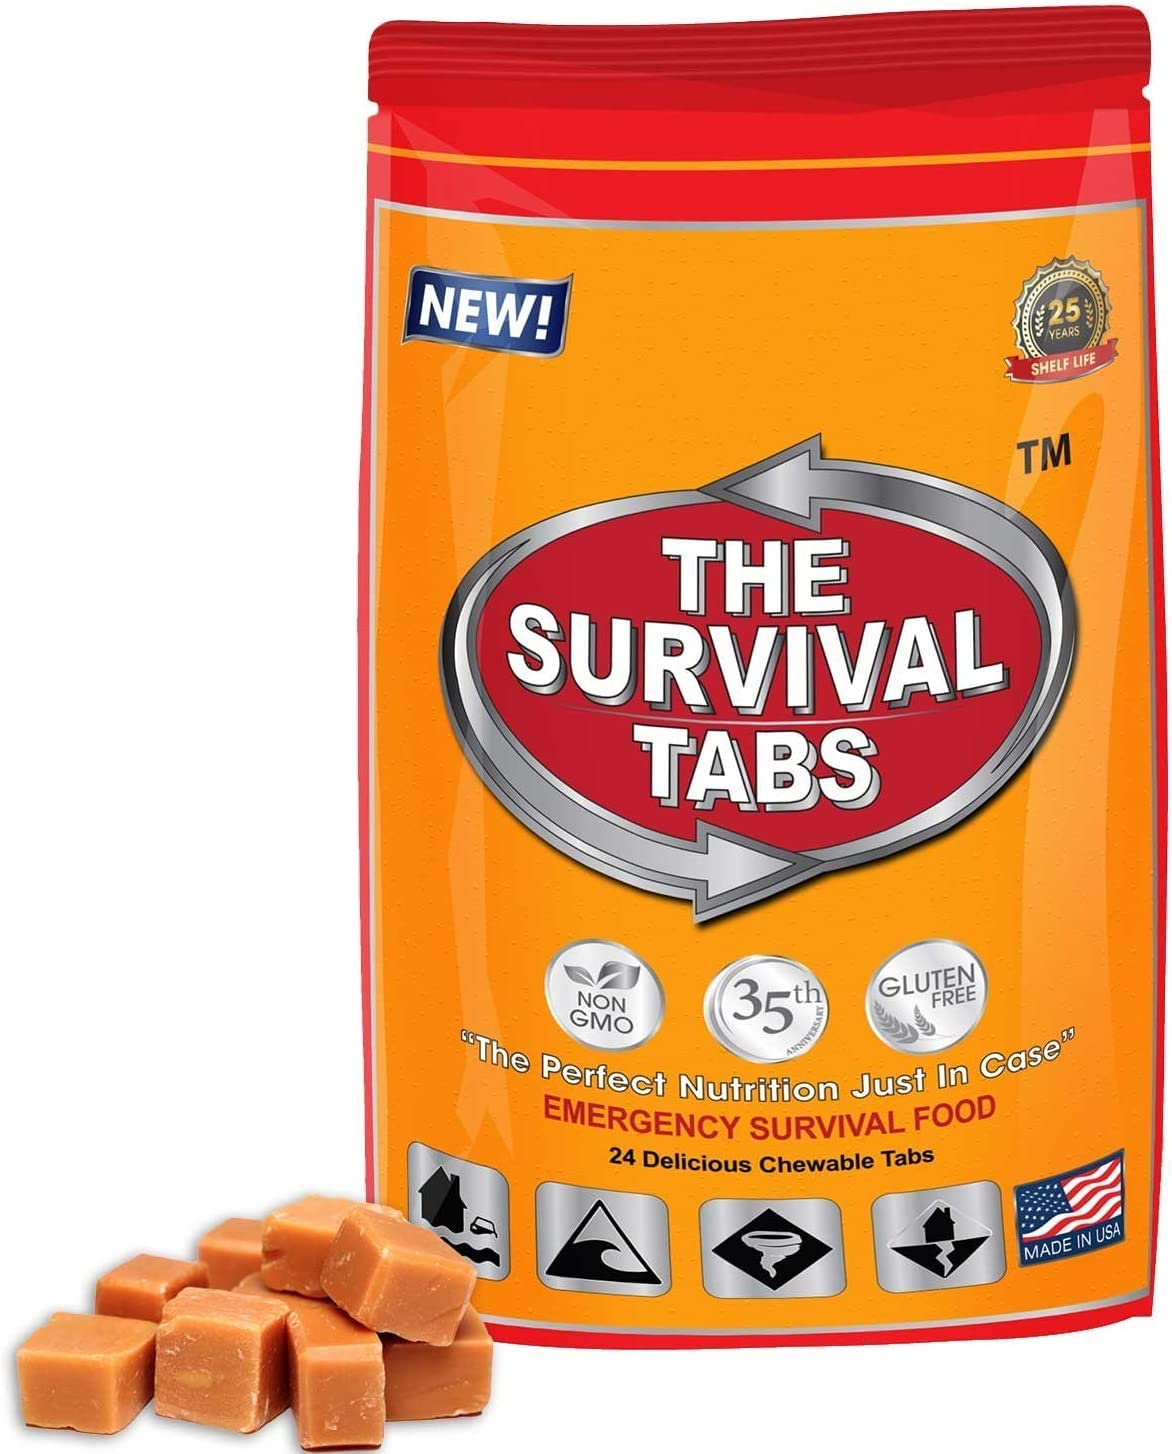 Survival Tabs - 2-Day Food Supply - Emergency Survival Food MRE for Outdoor Activities Gluten-Free, Non-GMO The Survival Tabs 25 Years Shelf Life (24 Tablets/Butterscotch)